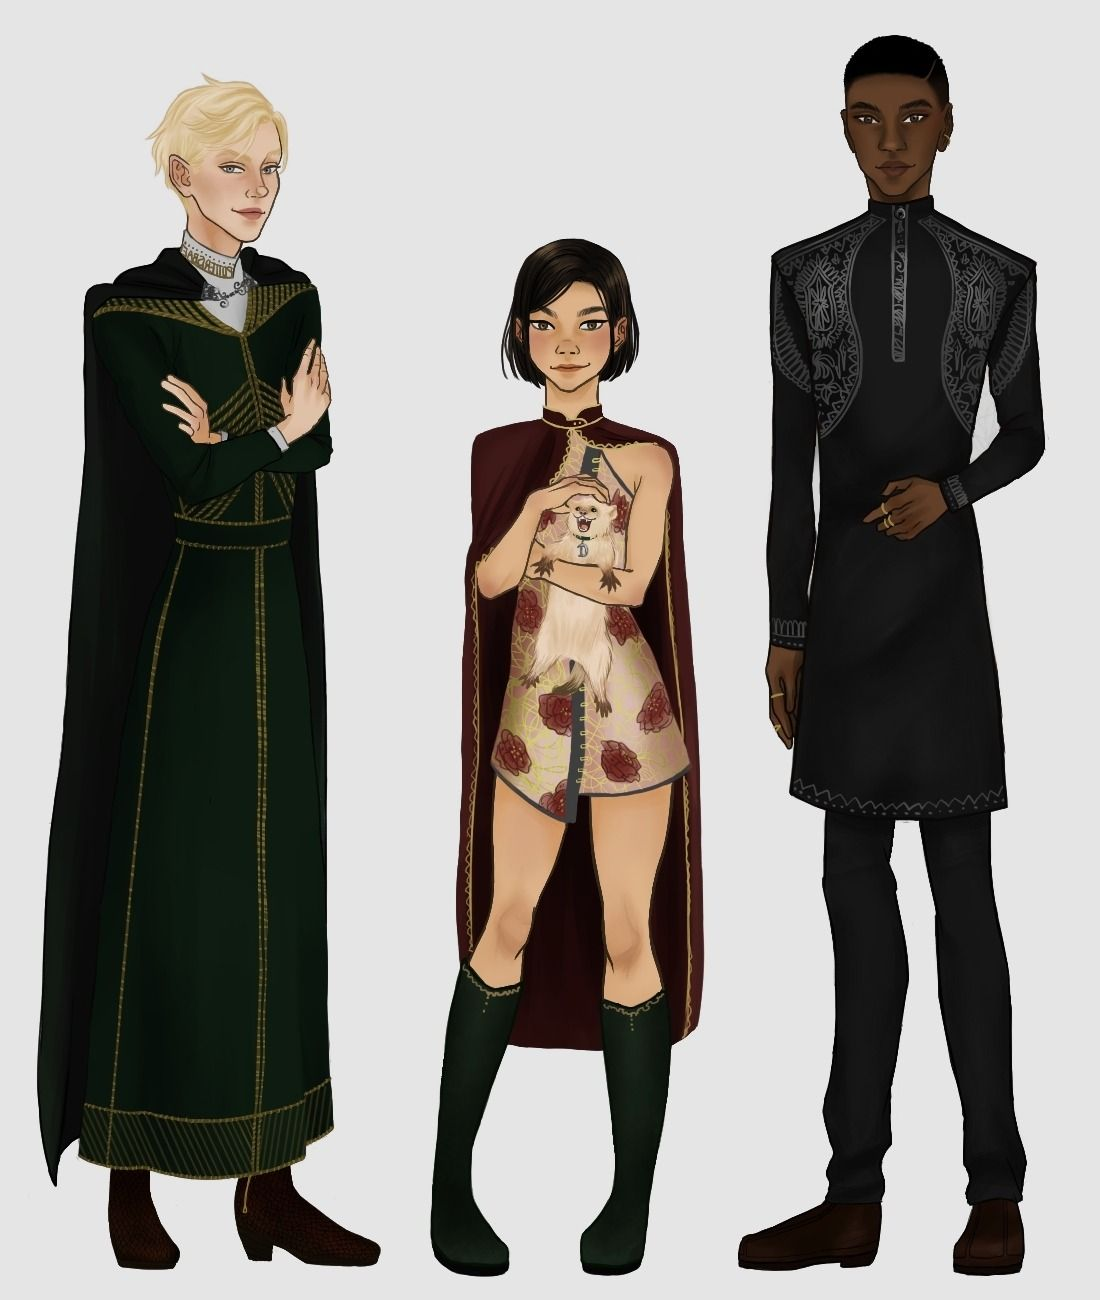 The Bronze Trio Did Pansy Get A White Ferret She Named Dray Just To Spite Draco 100 Harry Potter Artwork Harry Potter Drawings Harry Potter Pansy Parkinson